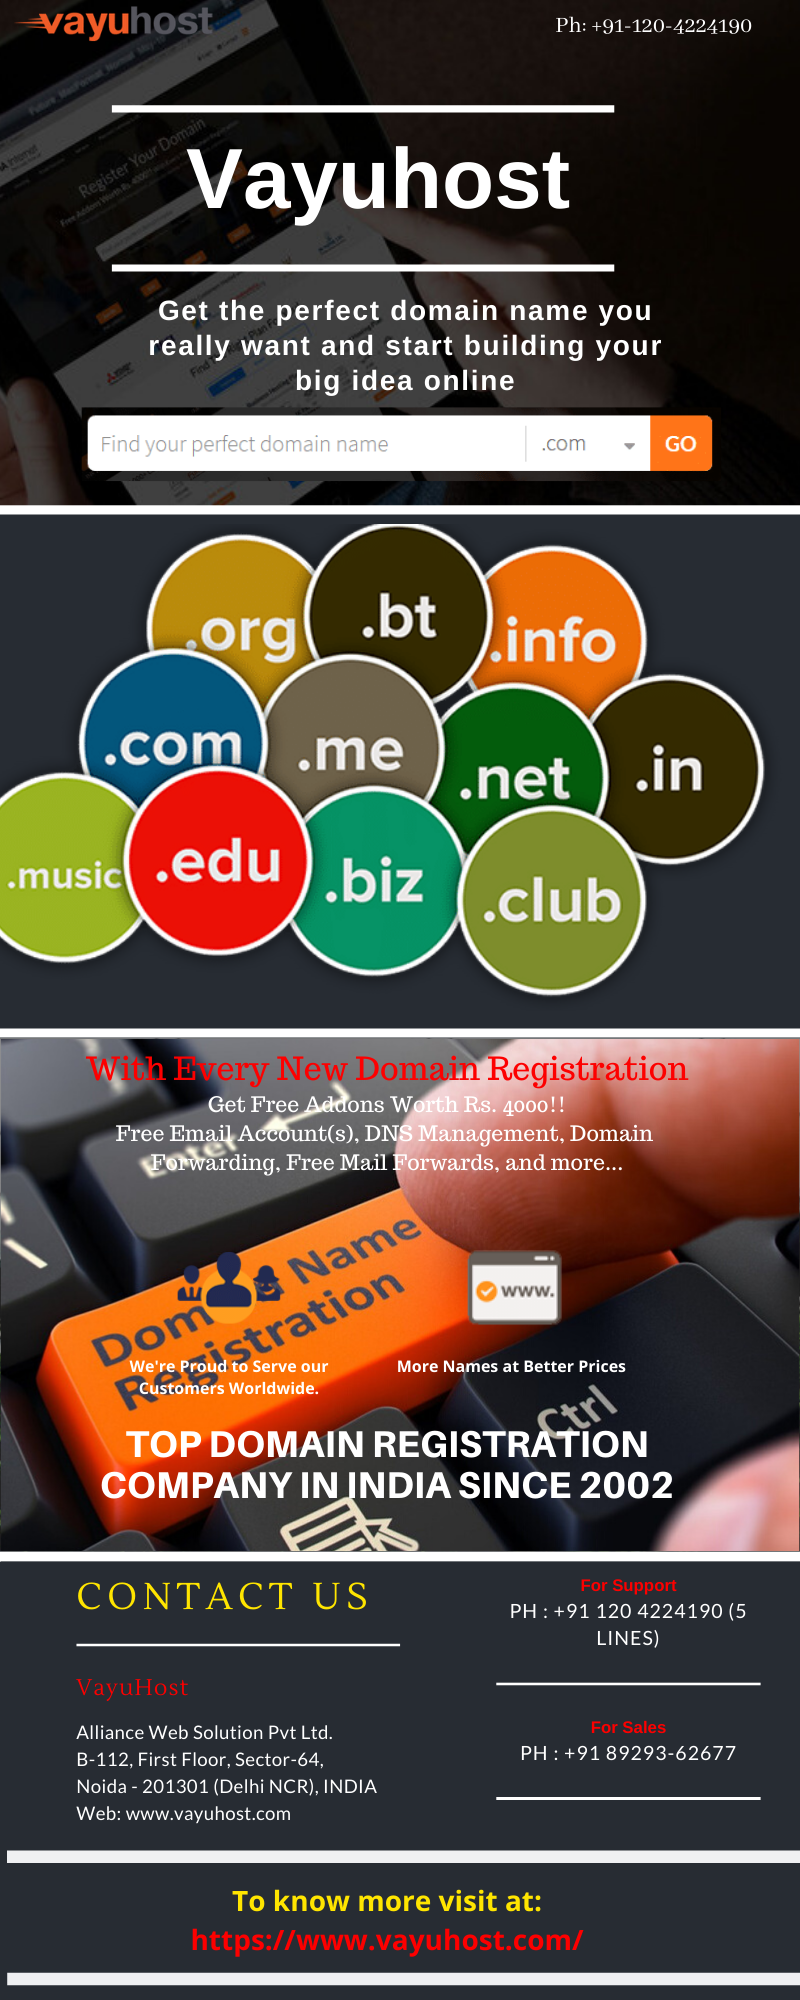 Domain Registration In India Vayuhost In 2020 Domain Registration Hosting Company Free Stuff By Mail